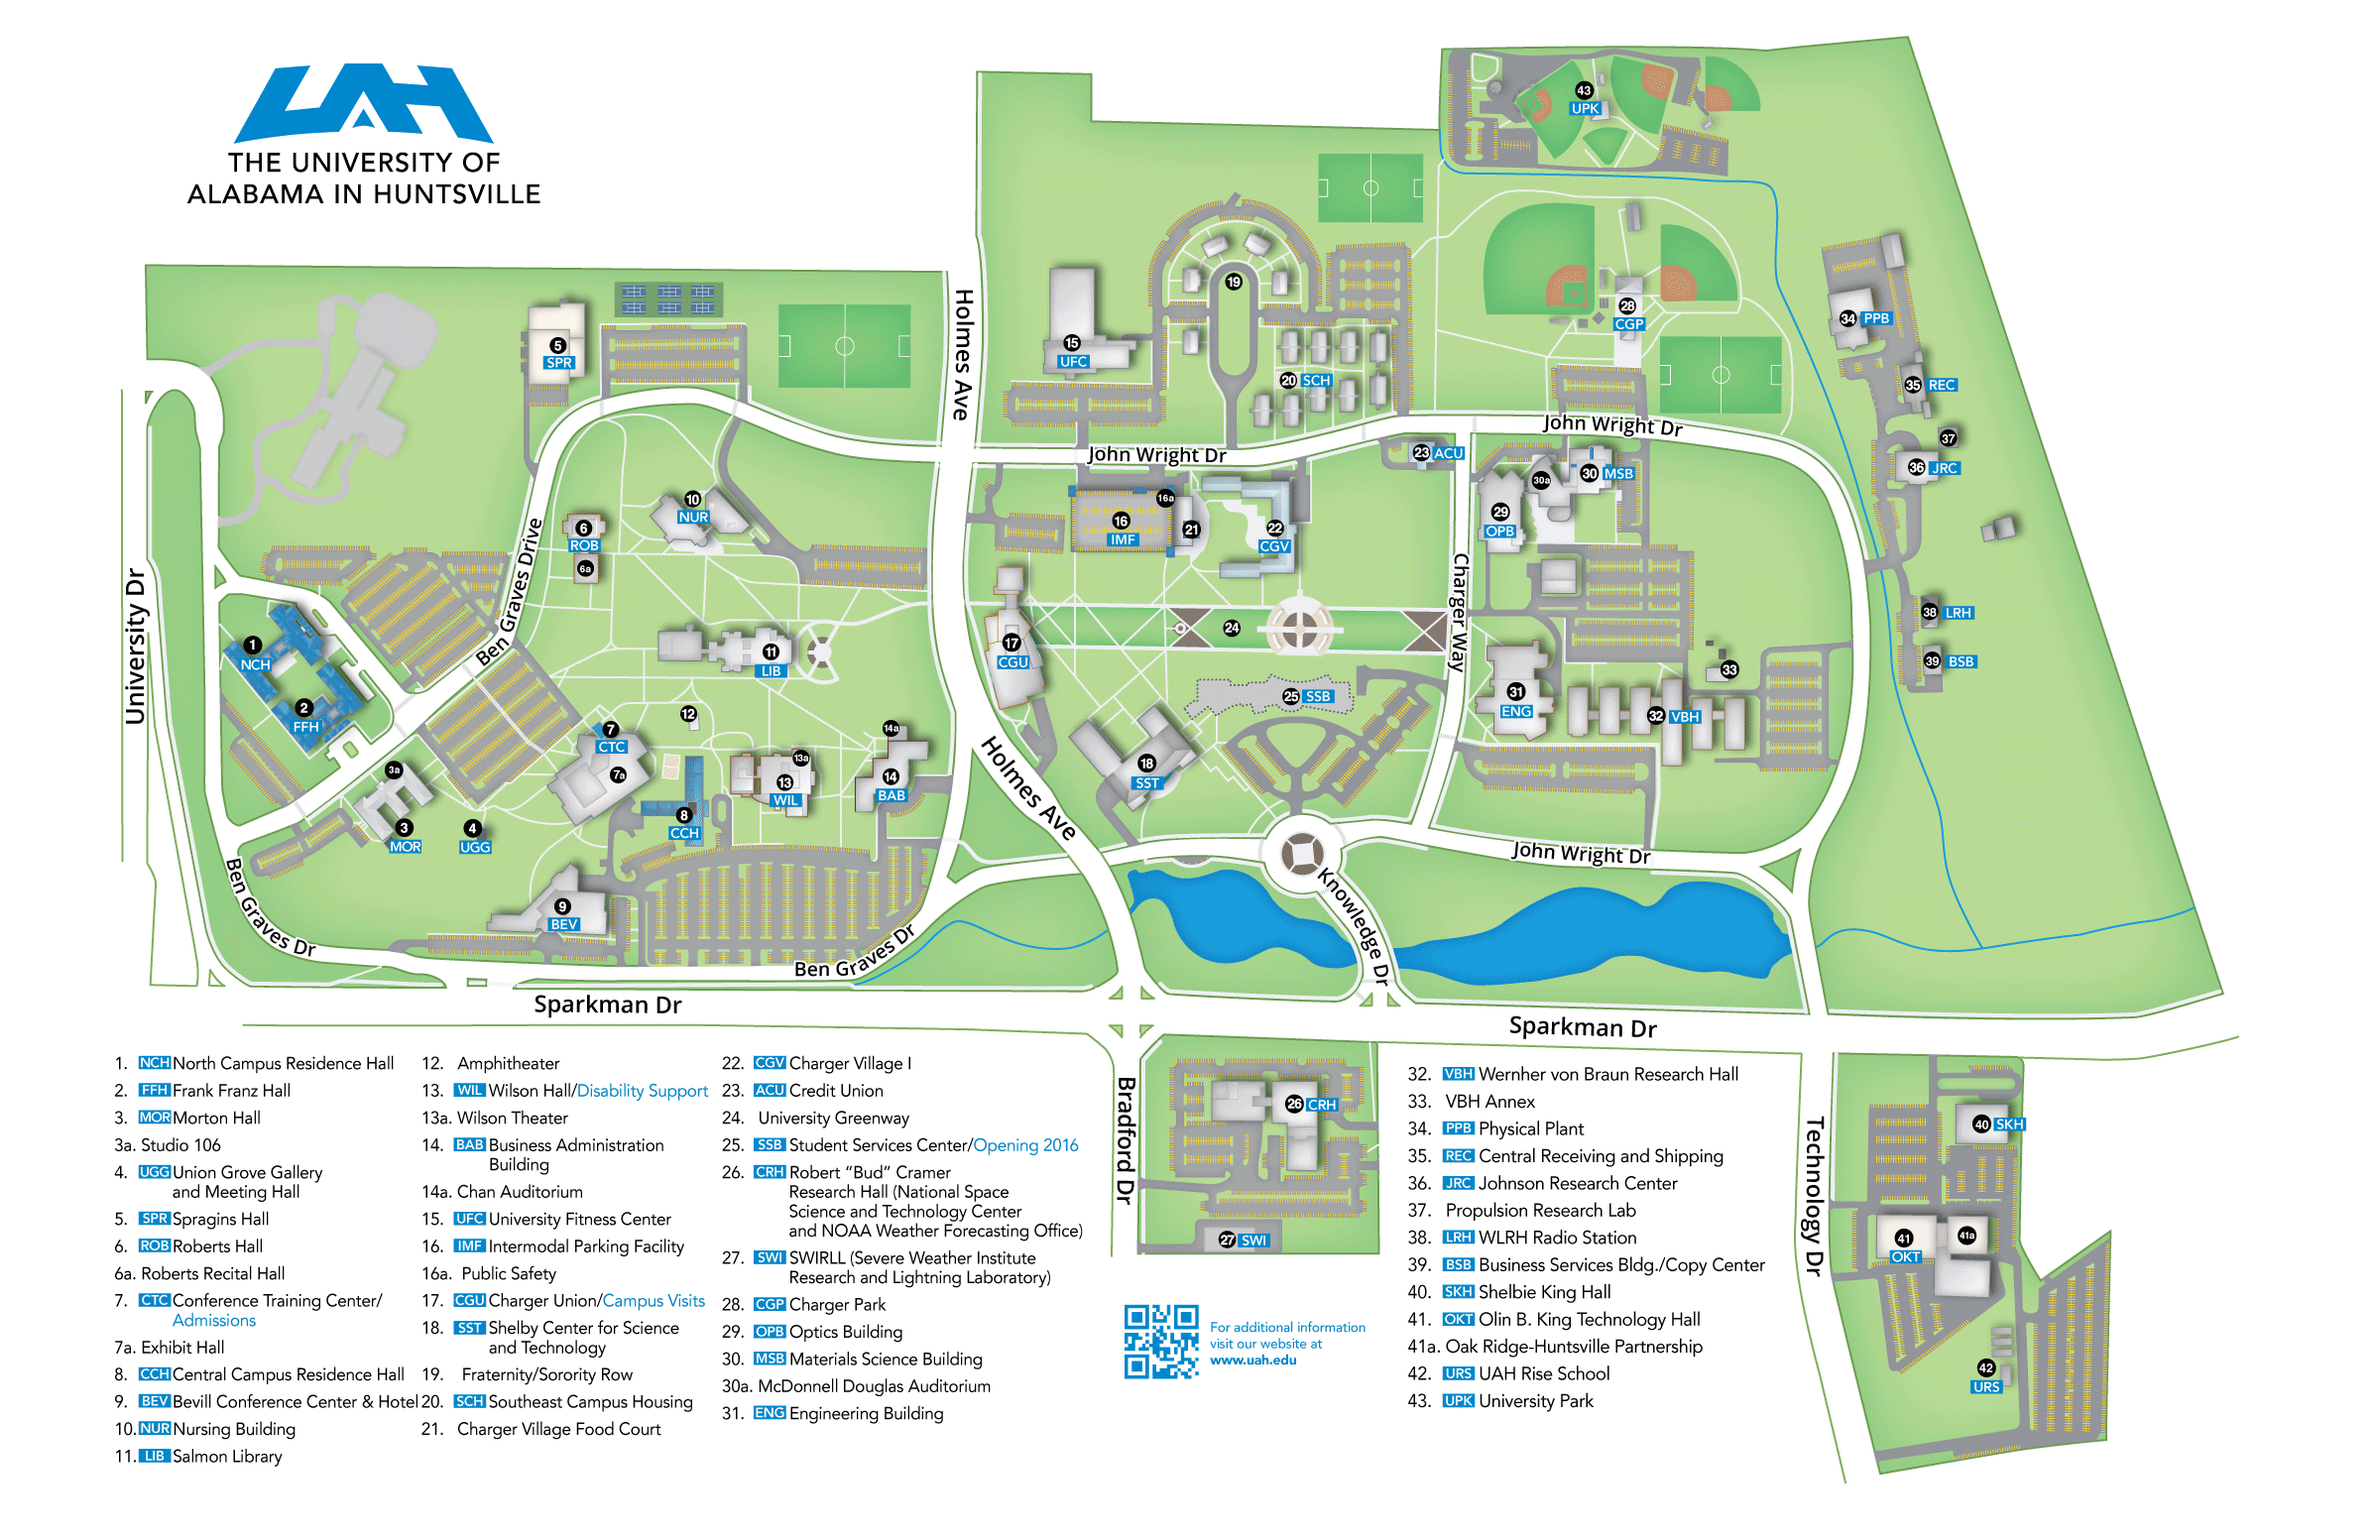 uah-campus-map-042015